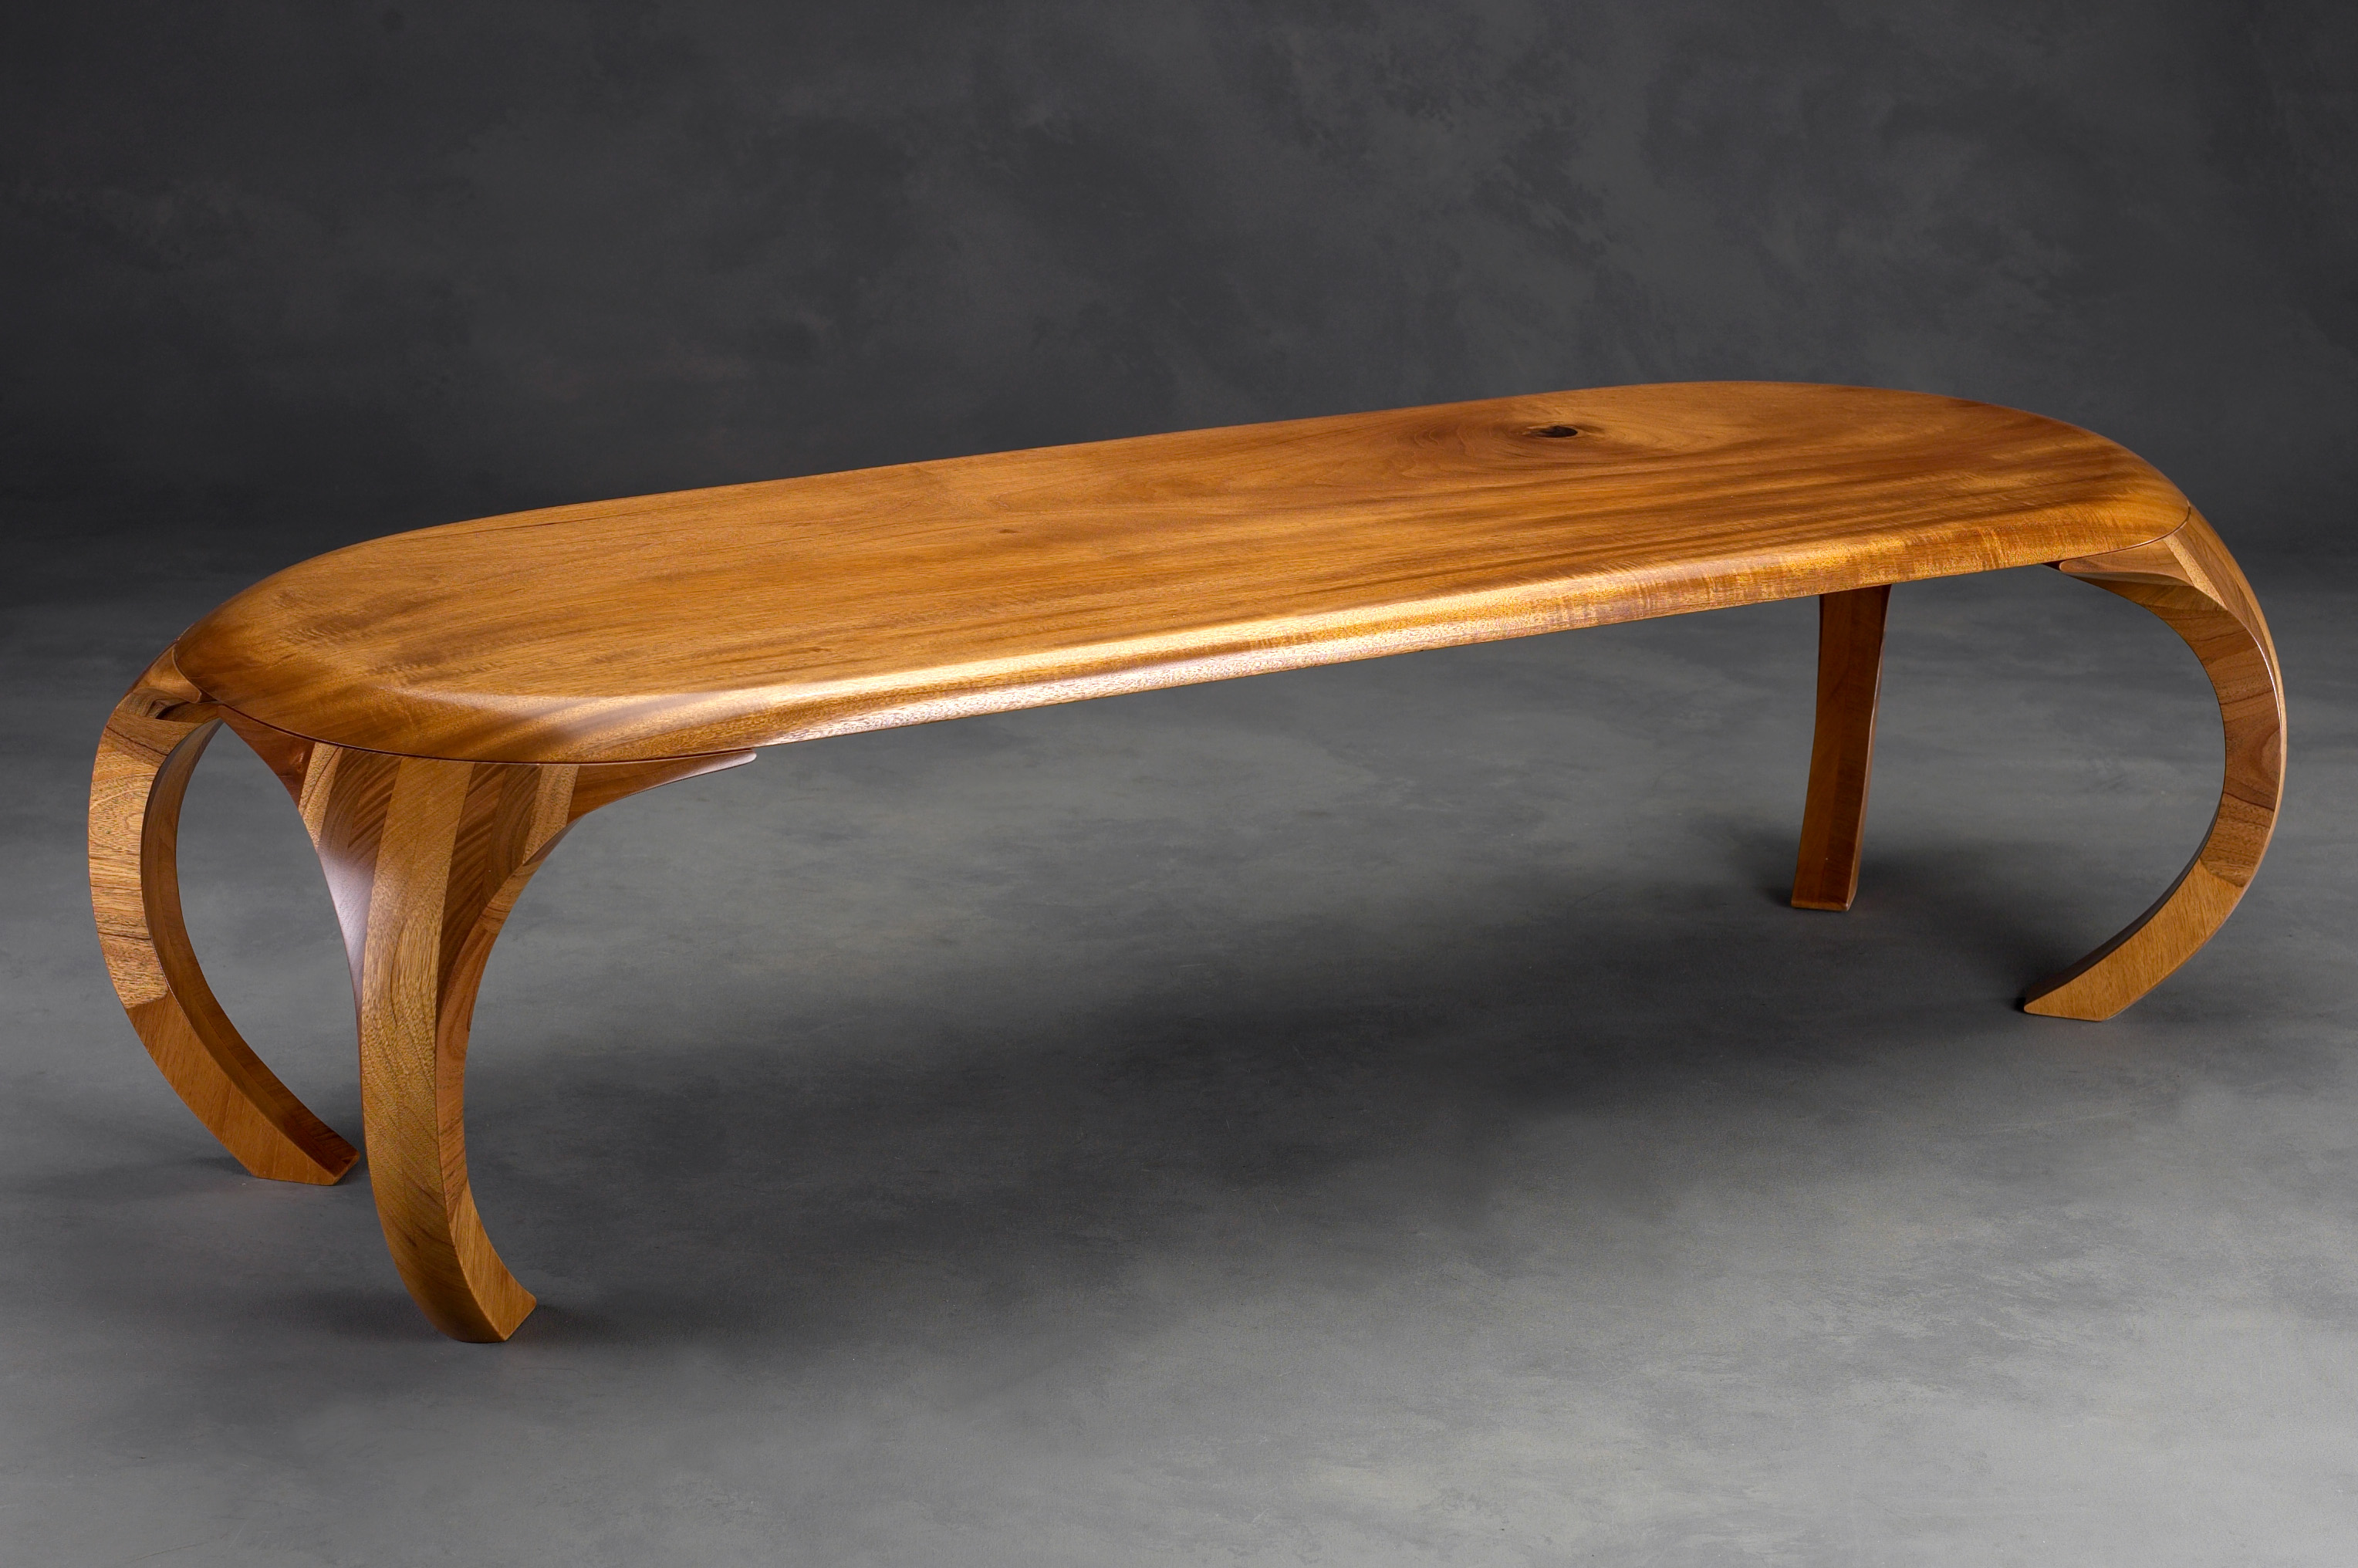 adjustable coffee table | marcus collier fine woodworking